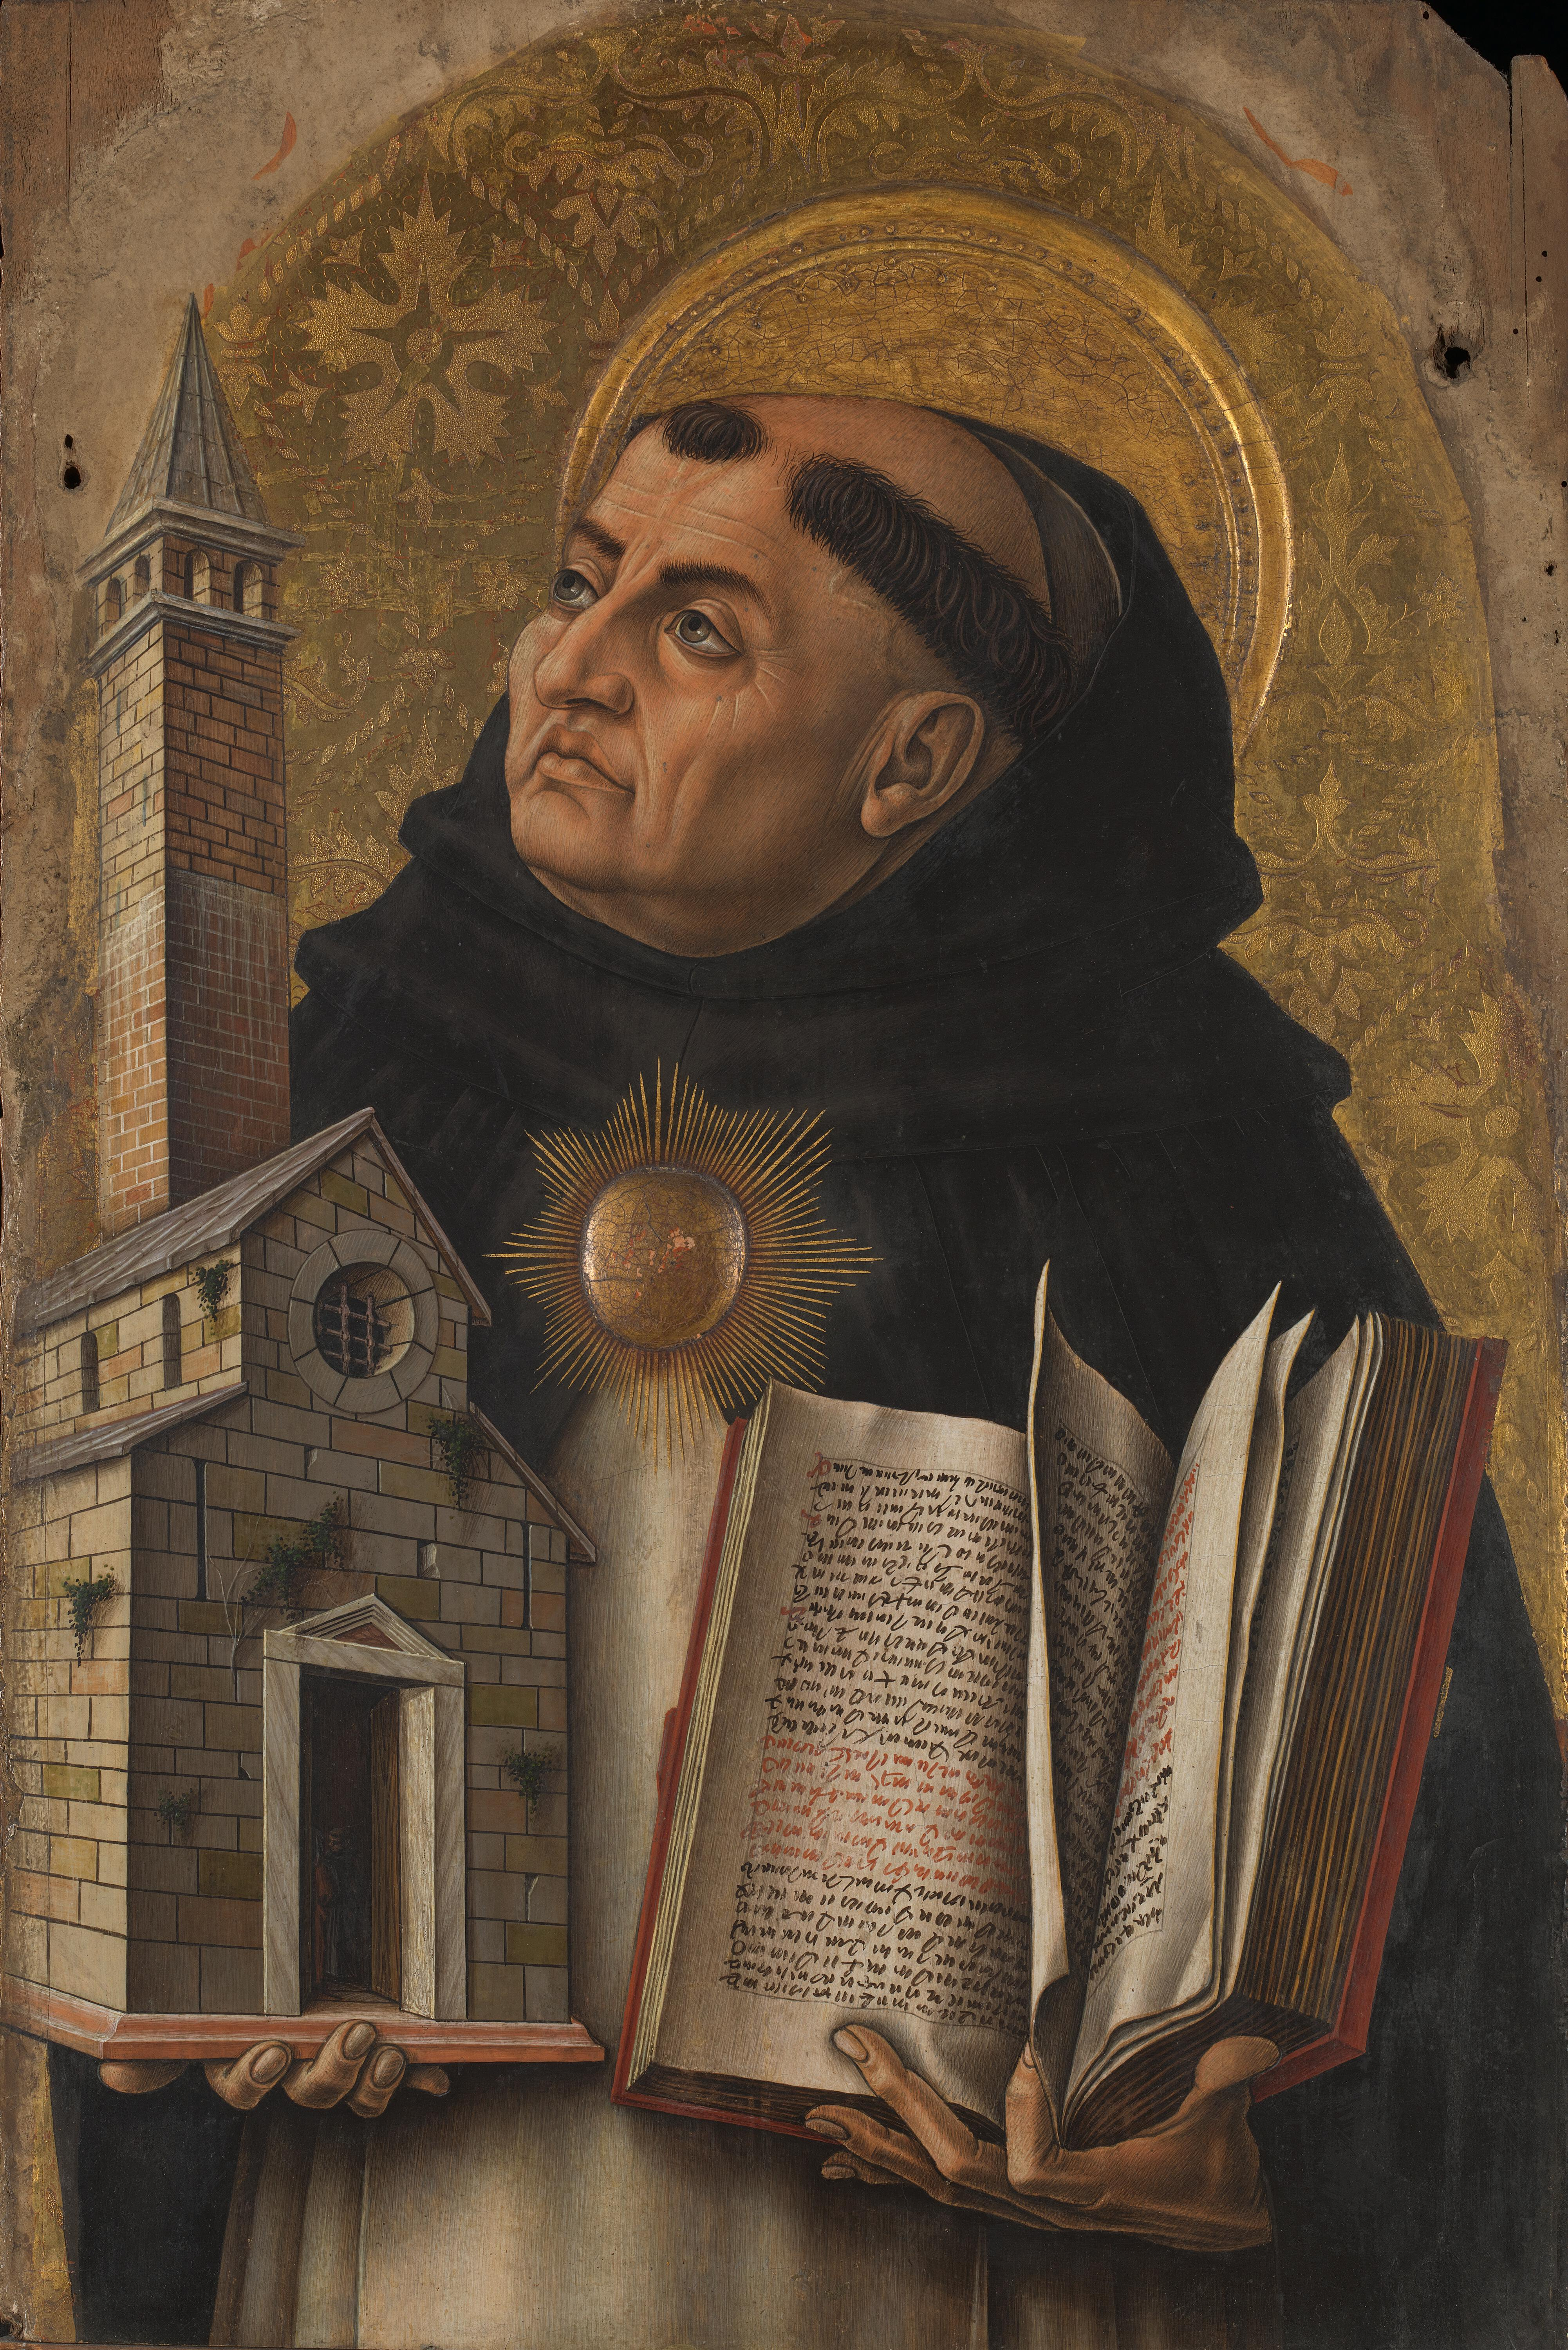 St Thomas Aquinas holding the Summa